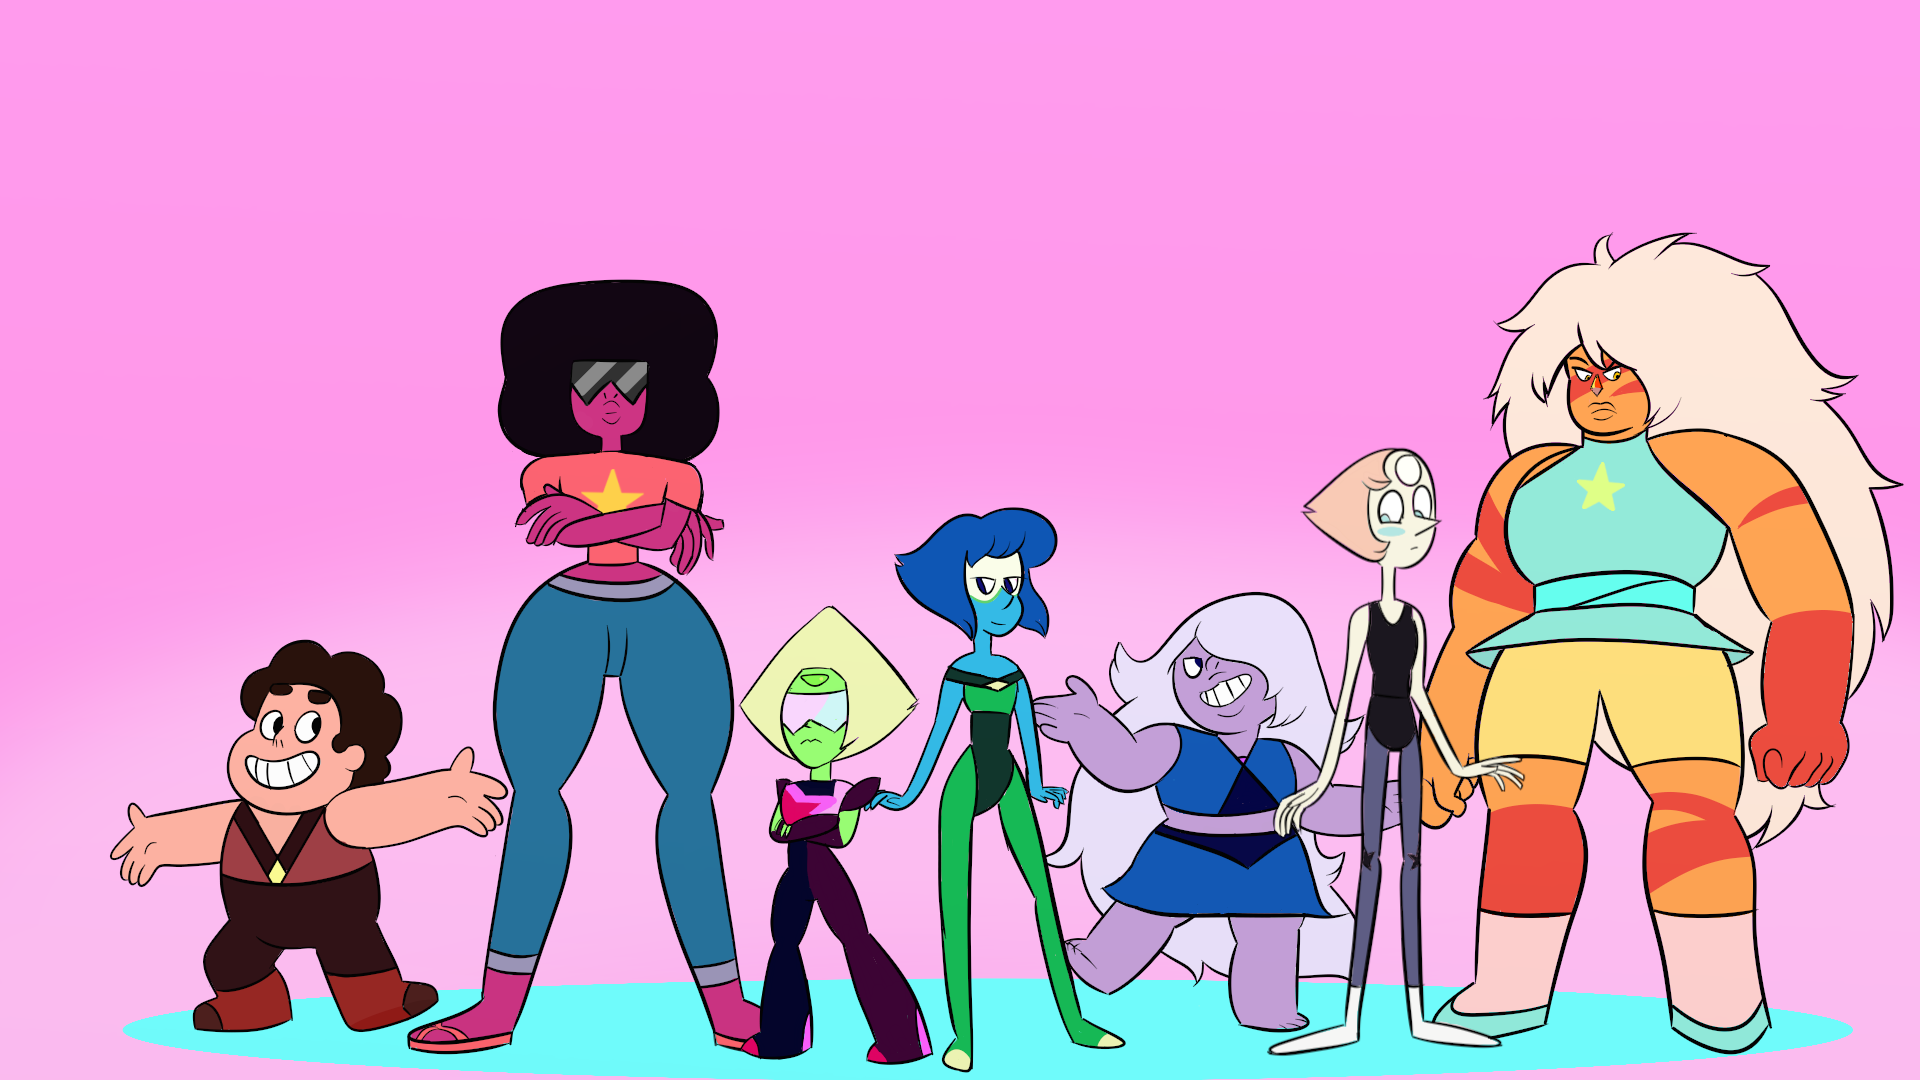 Steven Universe Gems Clothes-swap By Megacoll51 On DeviantArt